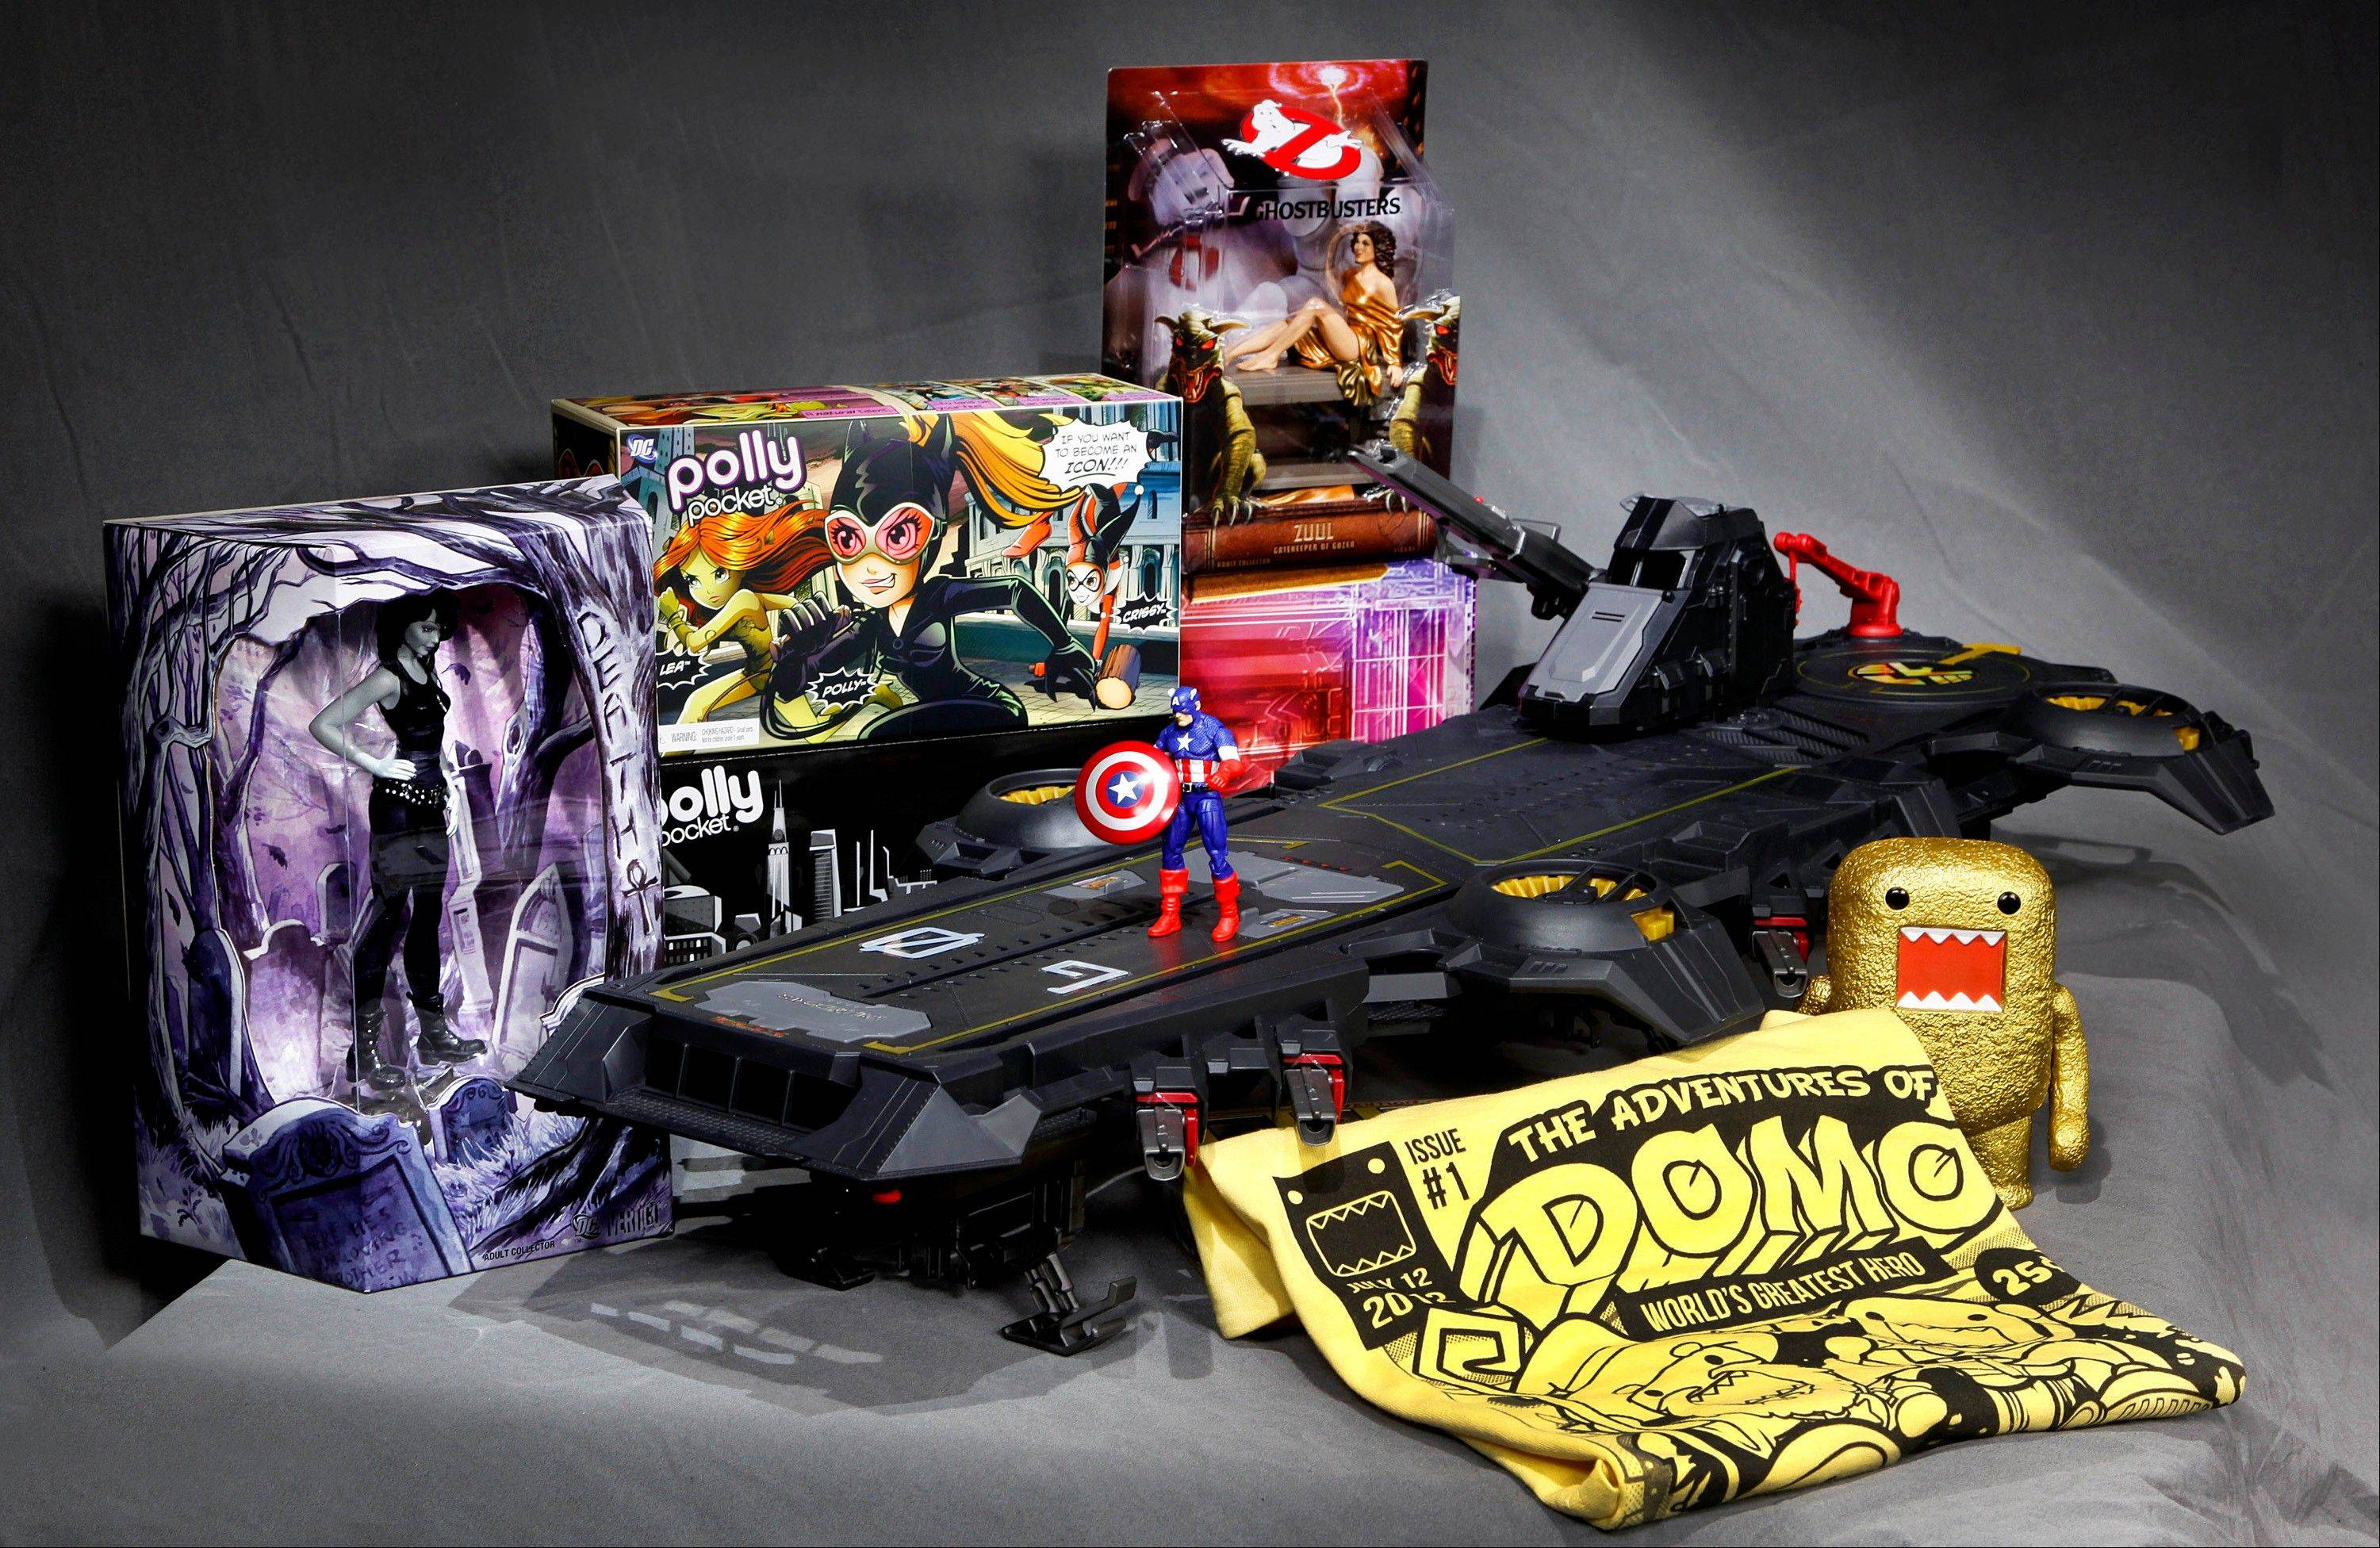 Associated Press/July 5, 2012 The Marvel Universe S.H.I.E.L.D. Super Helicarrier, at center with a Captain America figure on the foredeck, is seen with, from left background, a DC Comics Vertigo Death figurine, the Polly Pocket DC Comics Villain set, and a Dana as Zuul �Ghostbusters� figure, all special-issue Comic-Con 2012 collectibles, shown in Los Angeles.